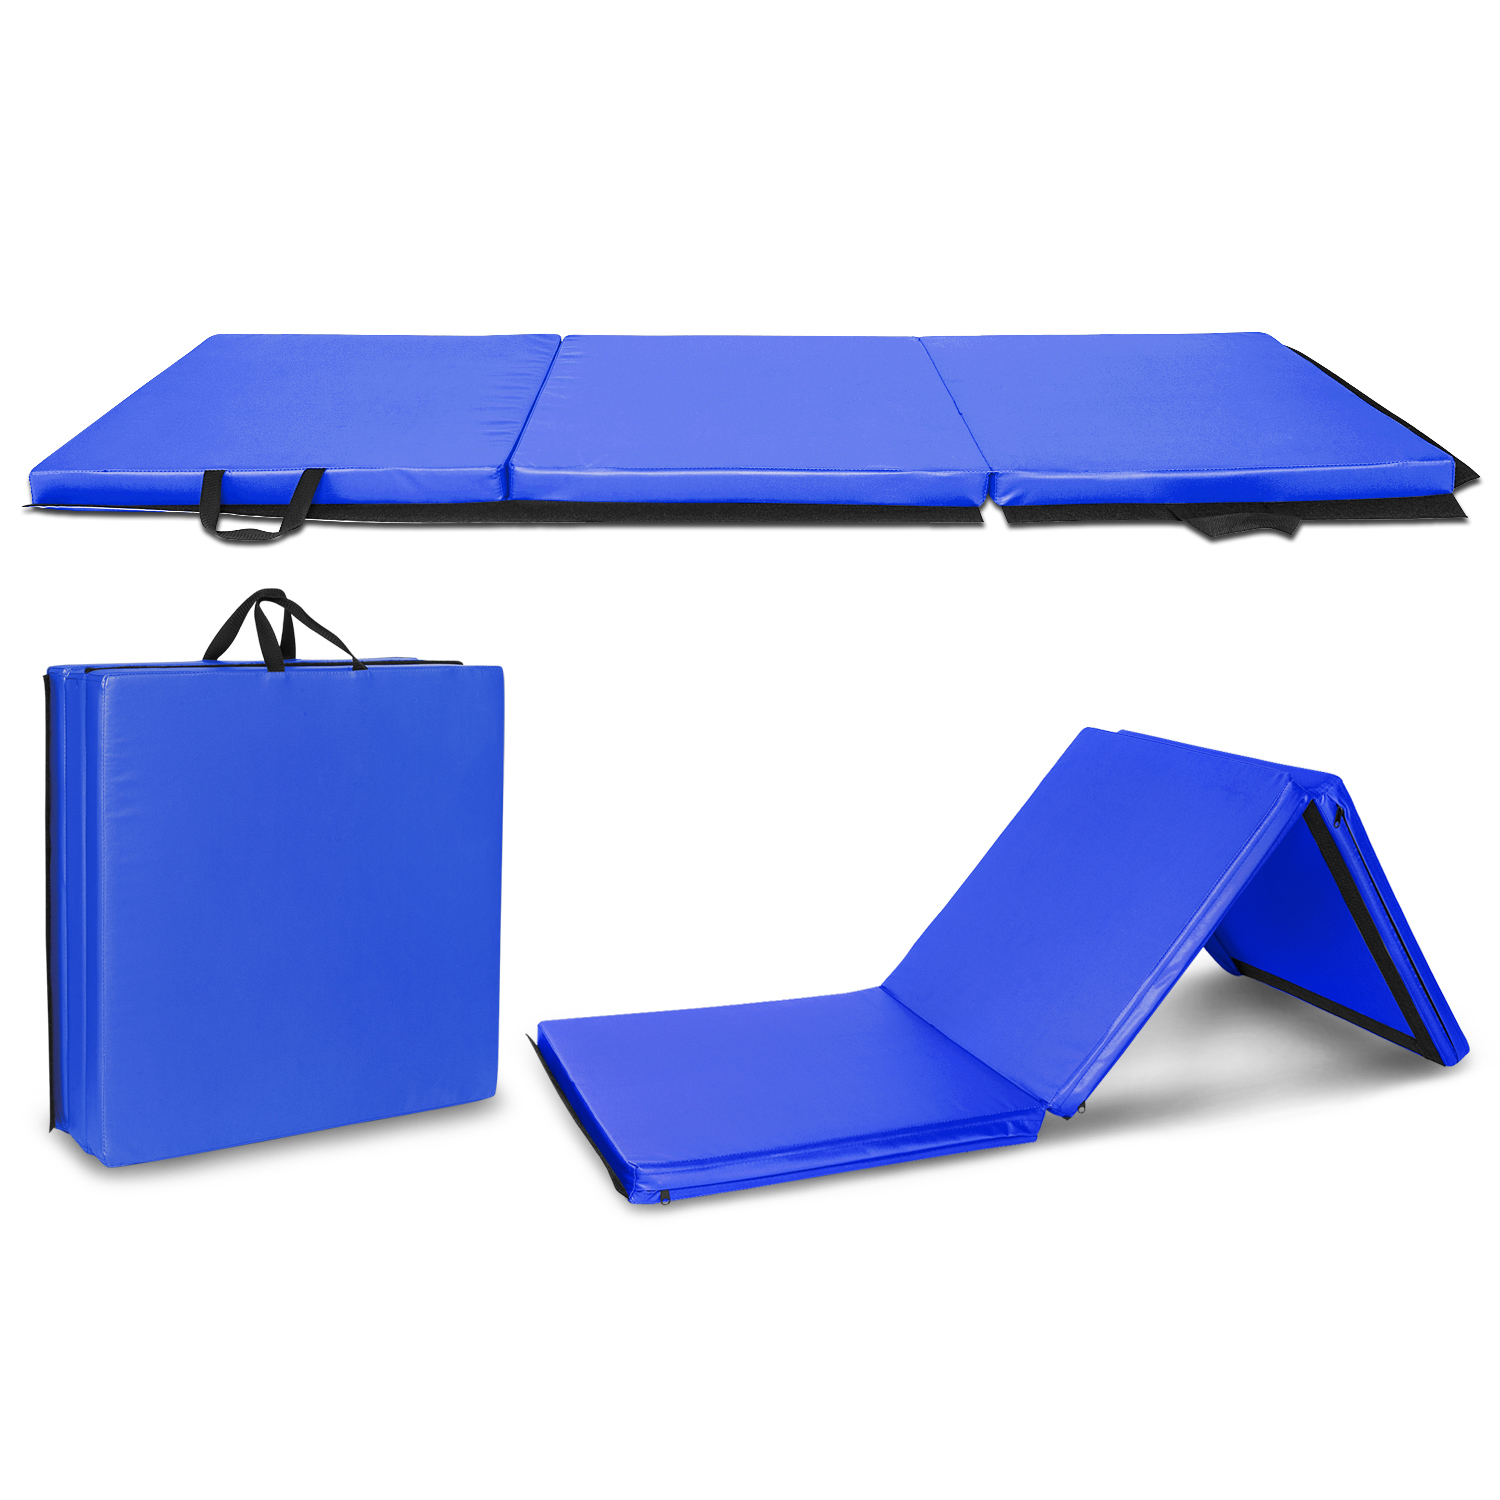 Ktaxon Kids Gymnastics Exercise Tumbling Air Track Inflatable Mats